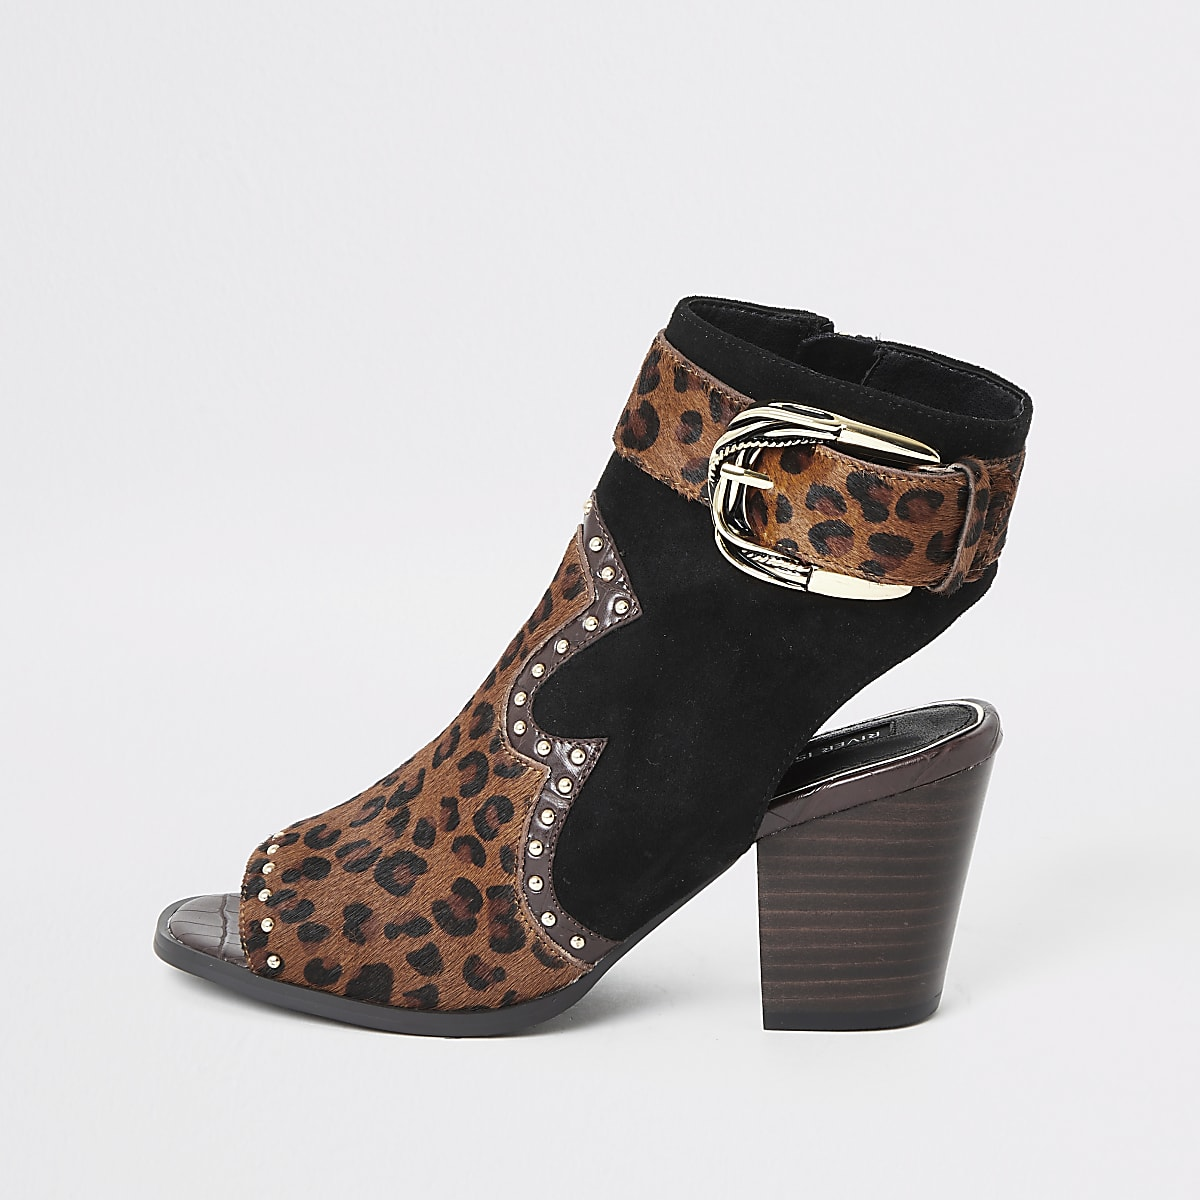 Bottines ouvertes imprimé animal marron style western